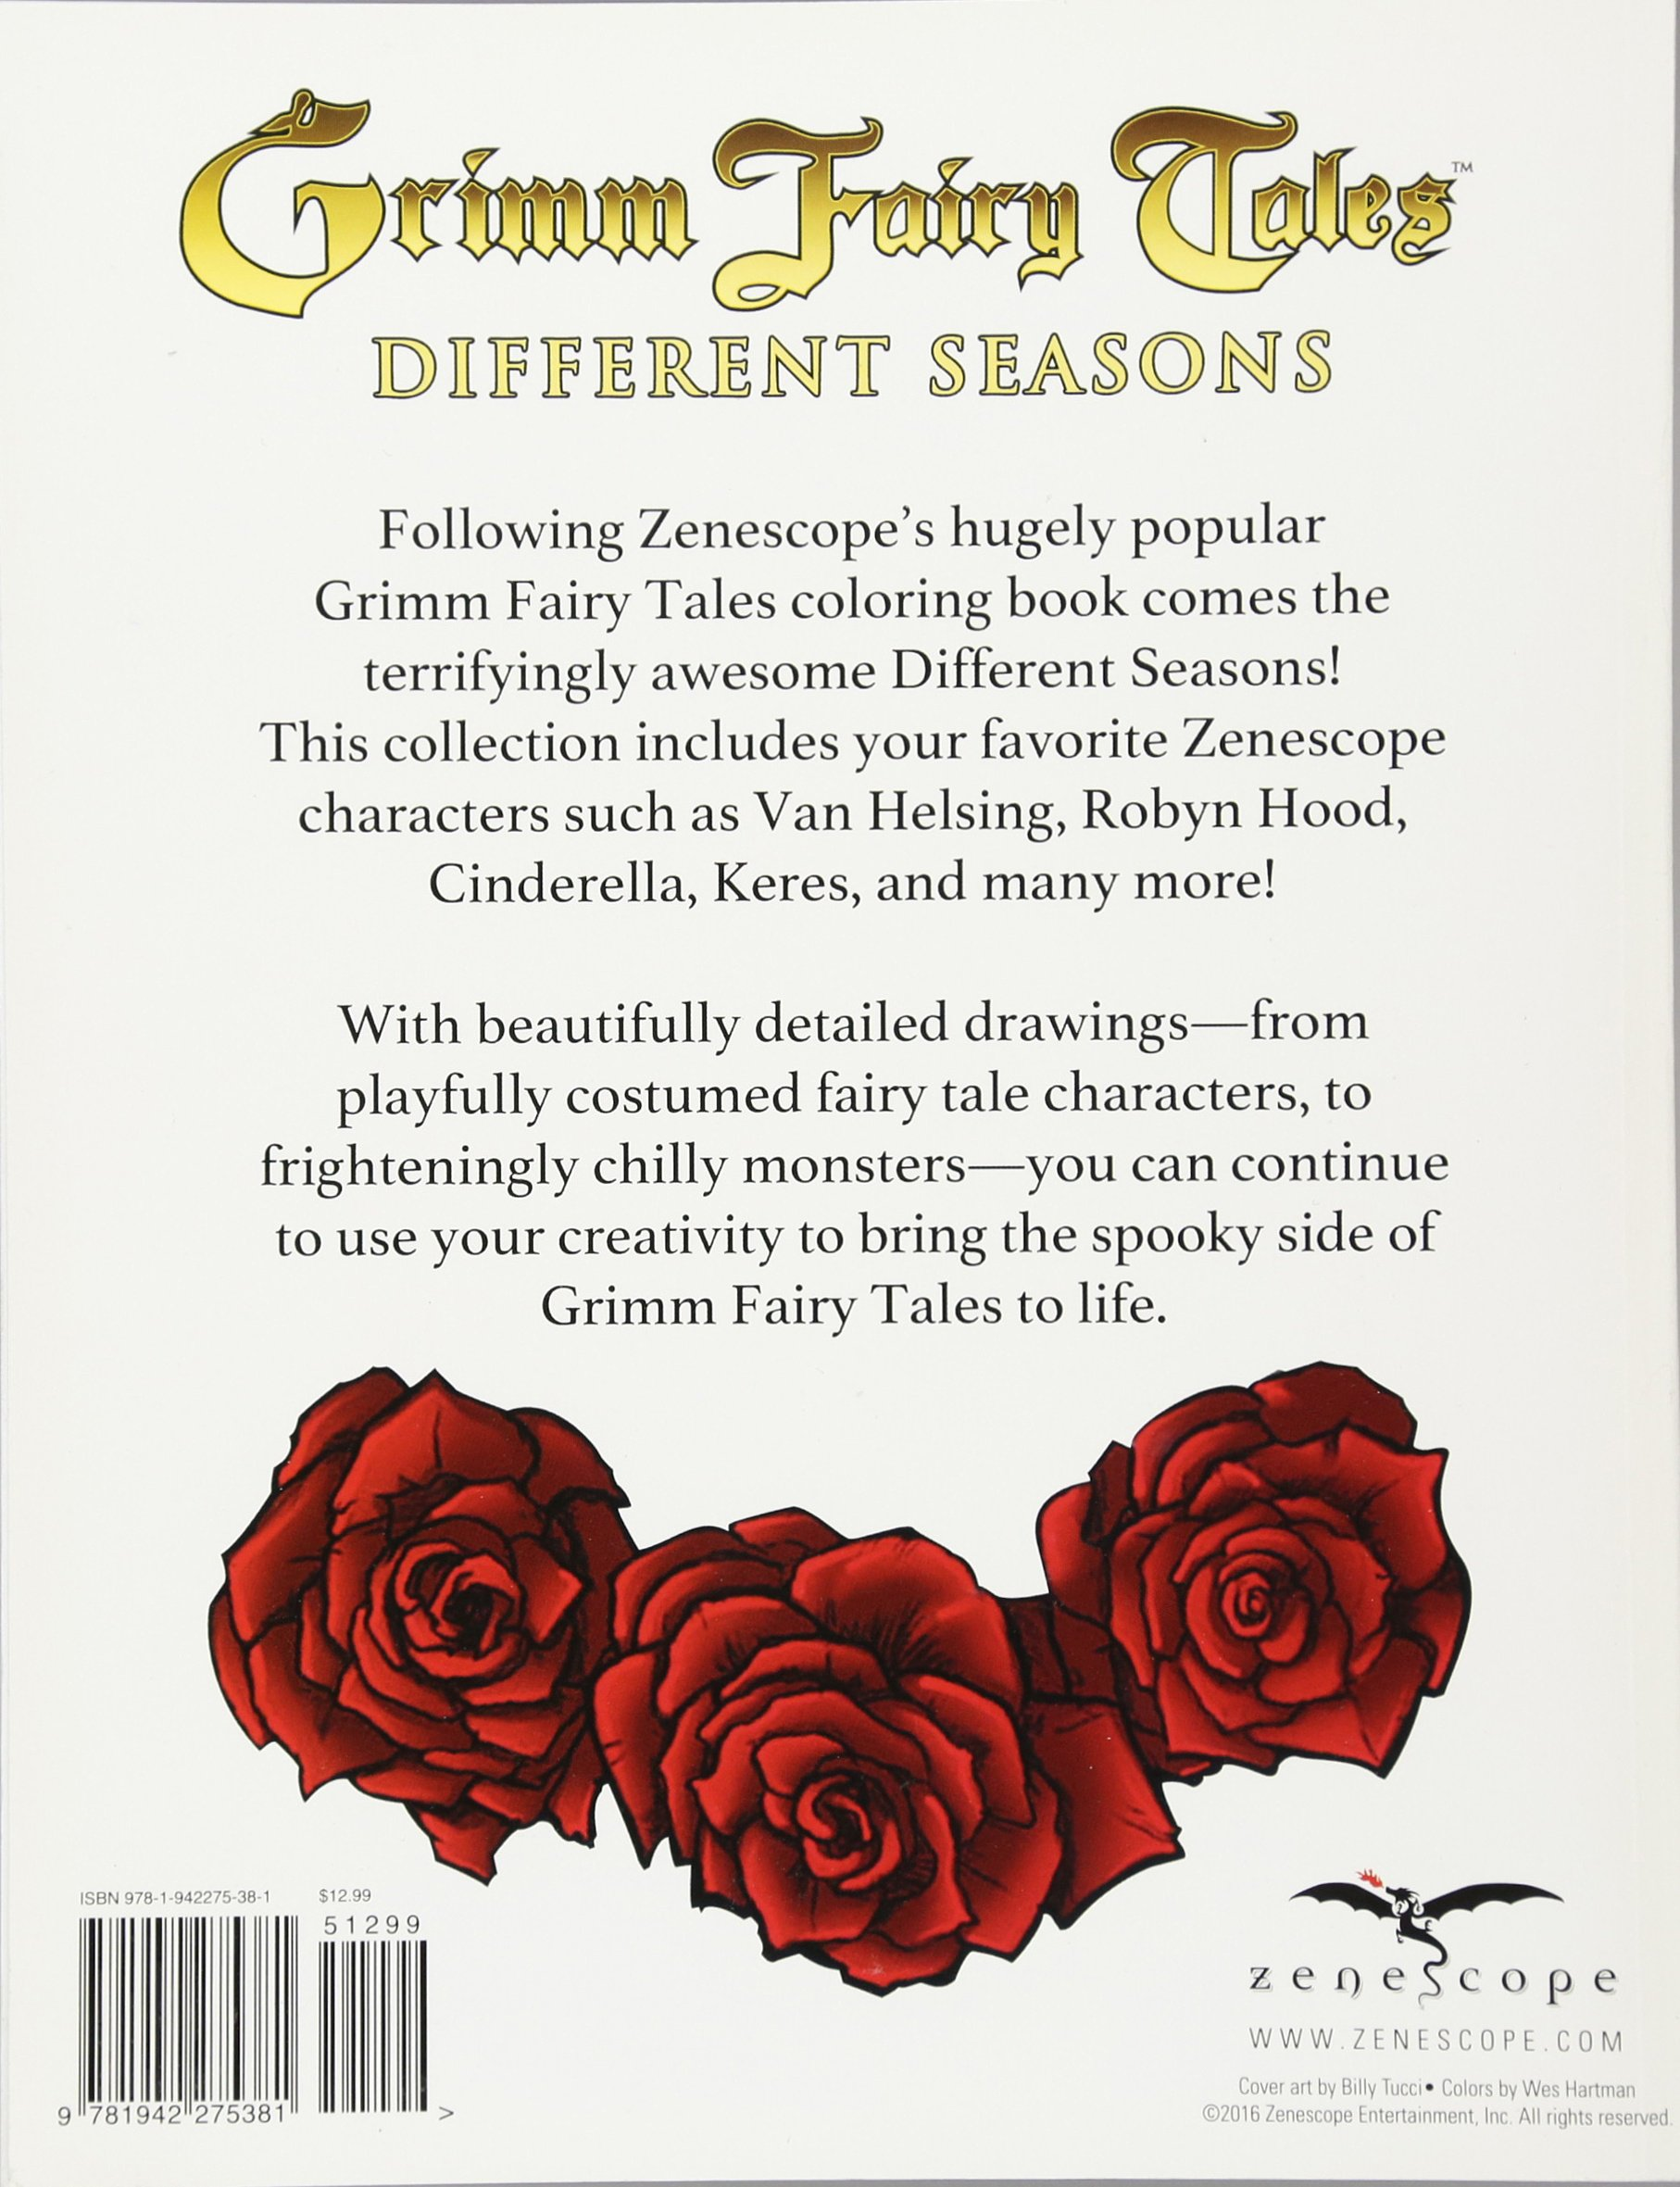 Amazon.com: Grimm Fairy Tales Adult Coloring Book Different Seasons ...